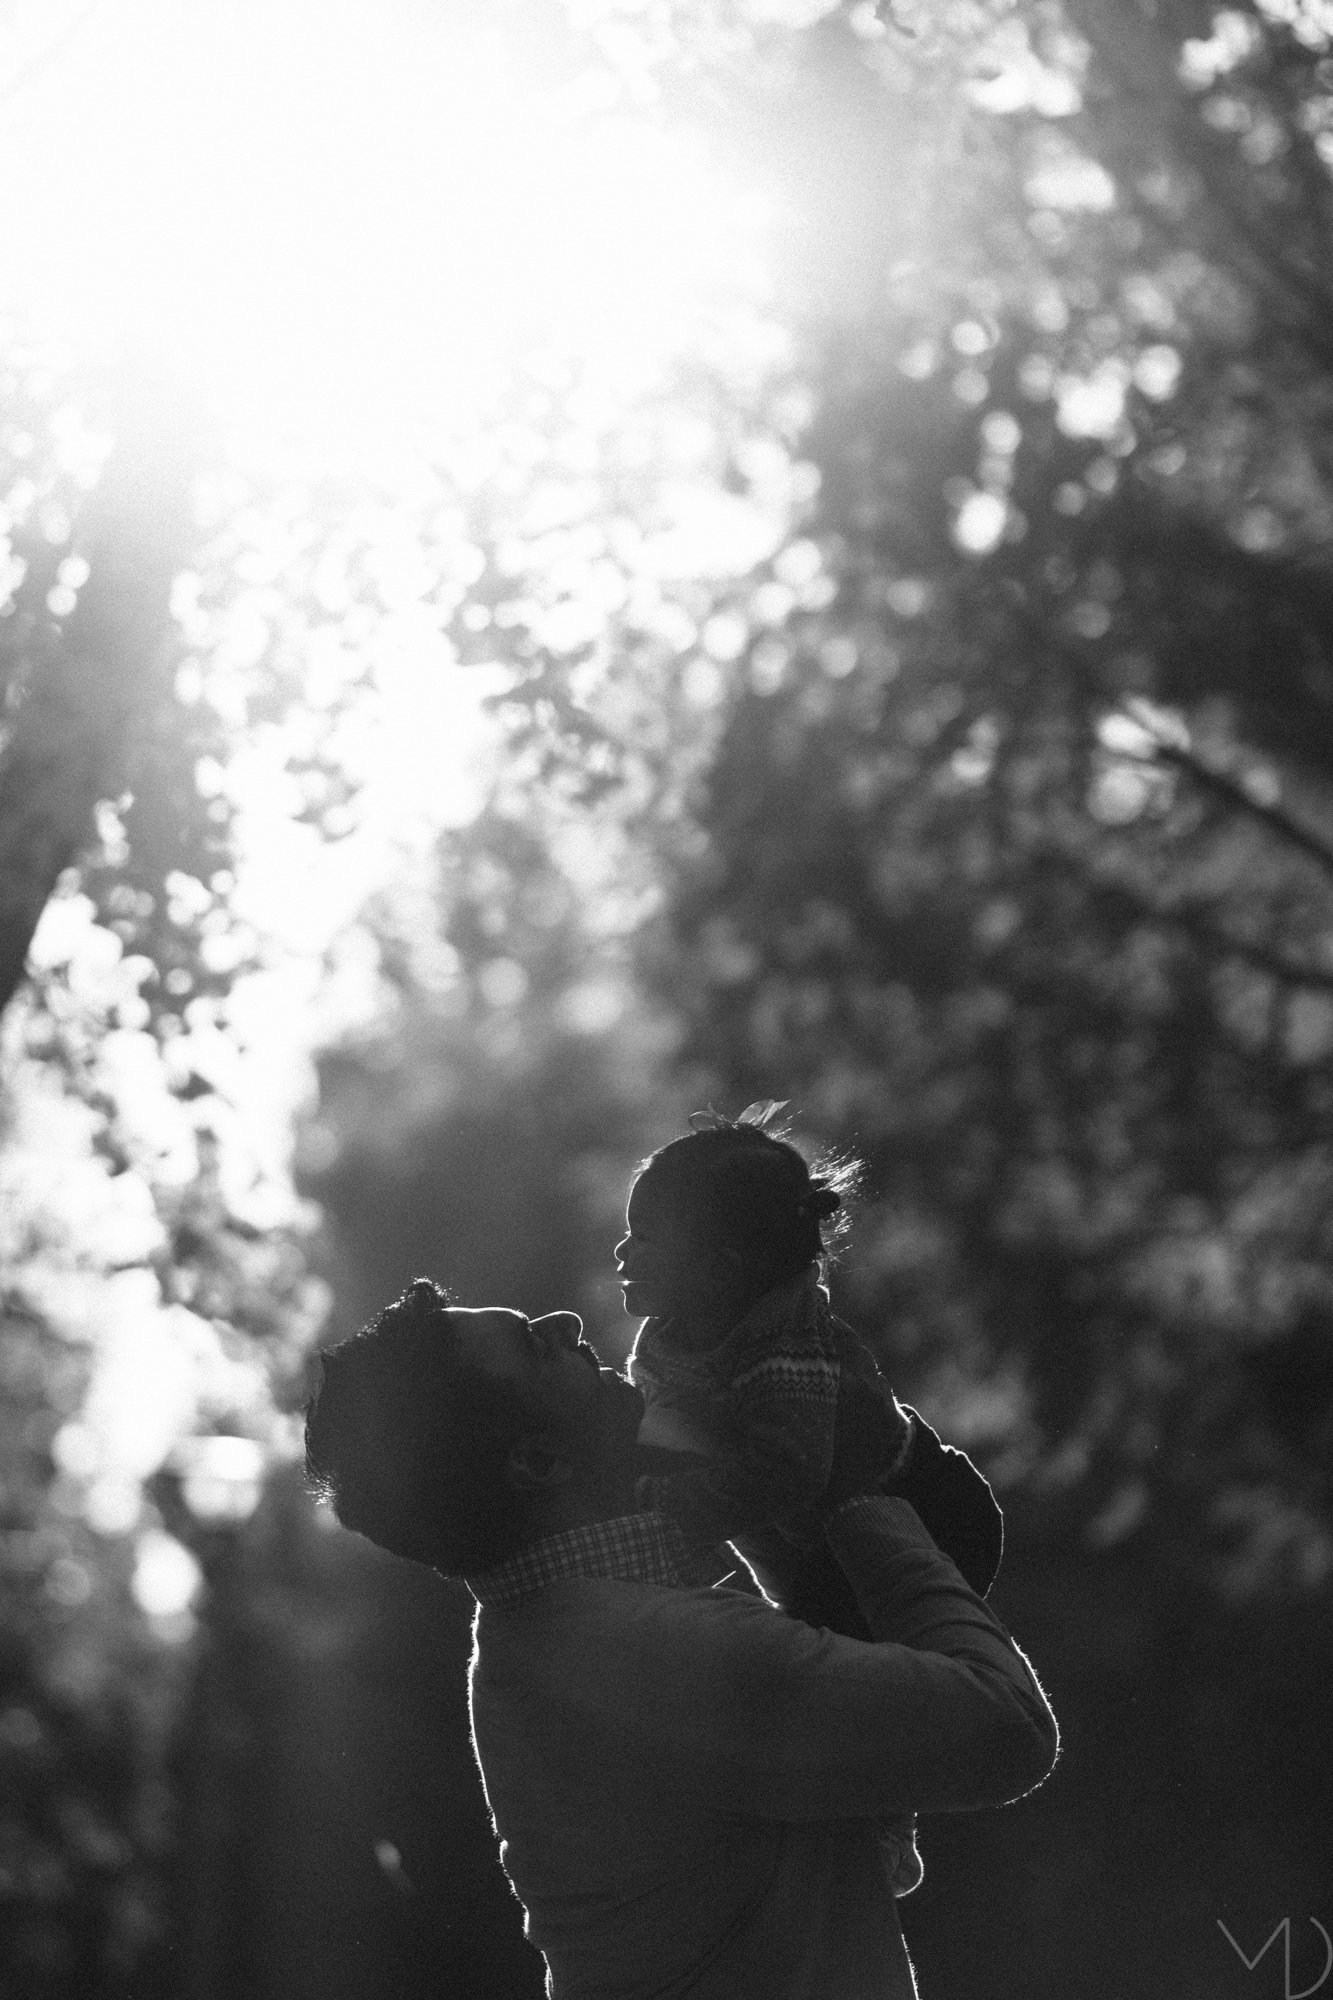 Taken at a family photography session here in Seoul.